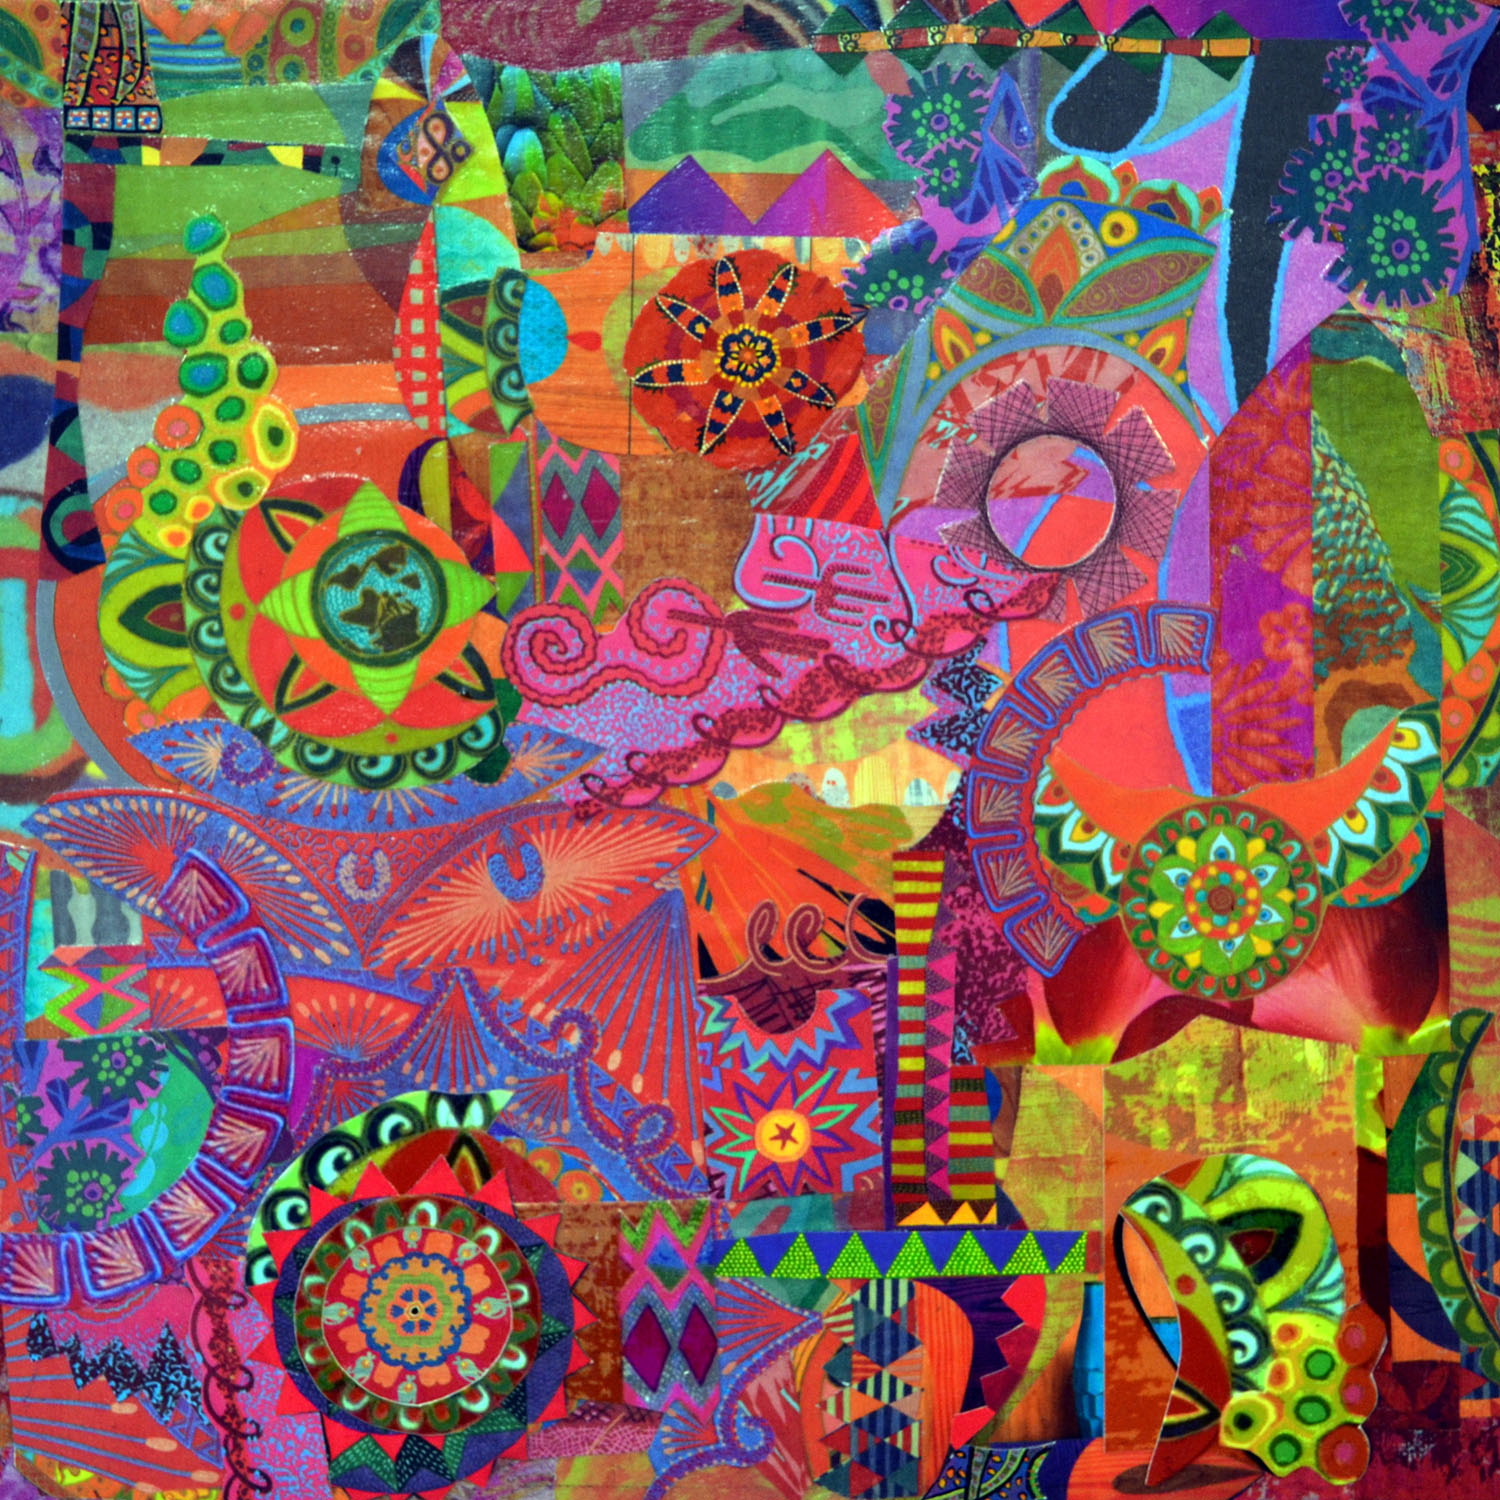 night circus-colorful-abstract-digital-art-collage-by-judi-magier.jpg